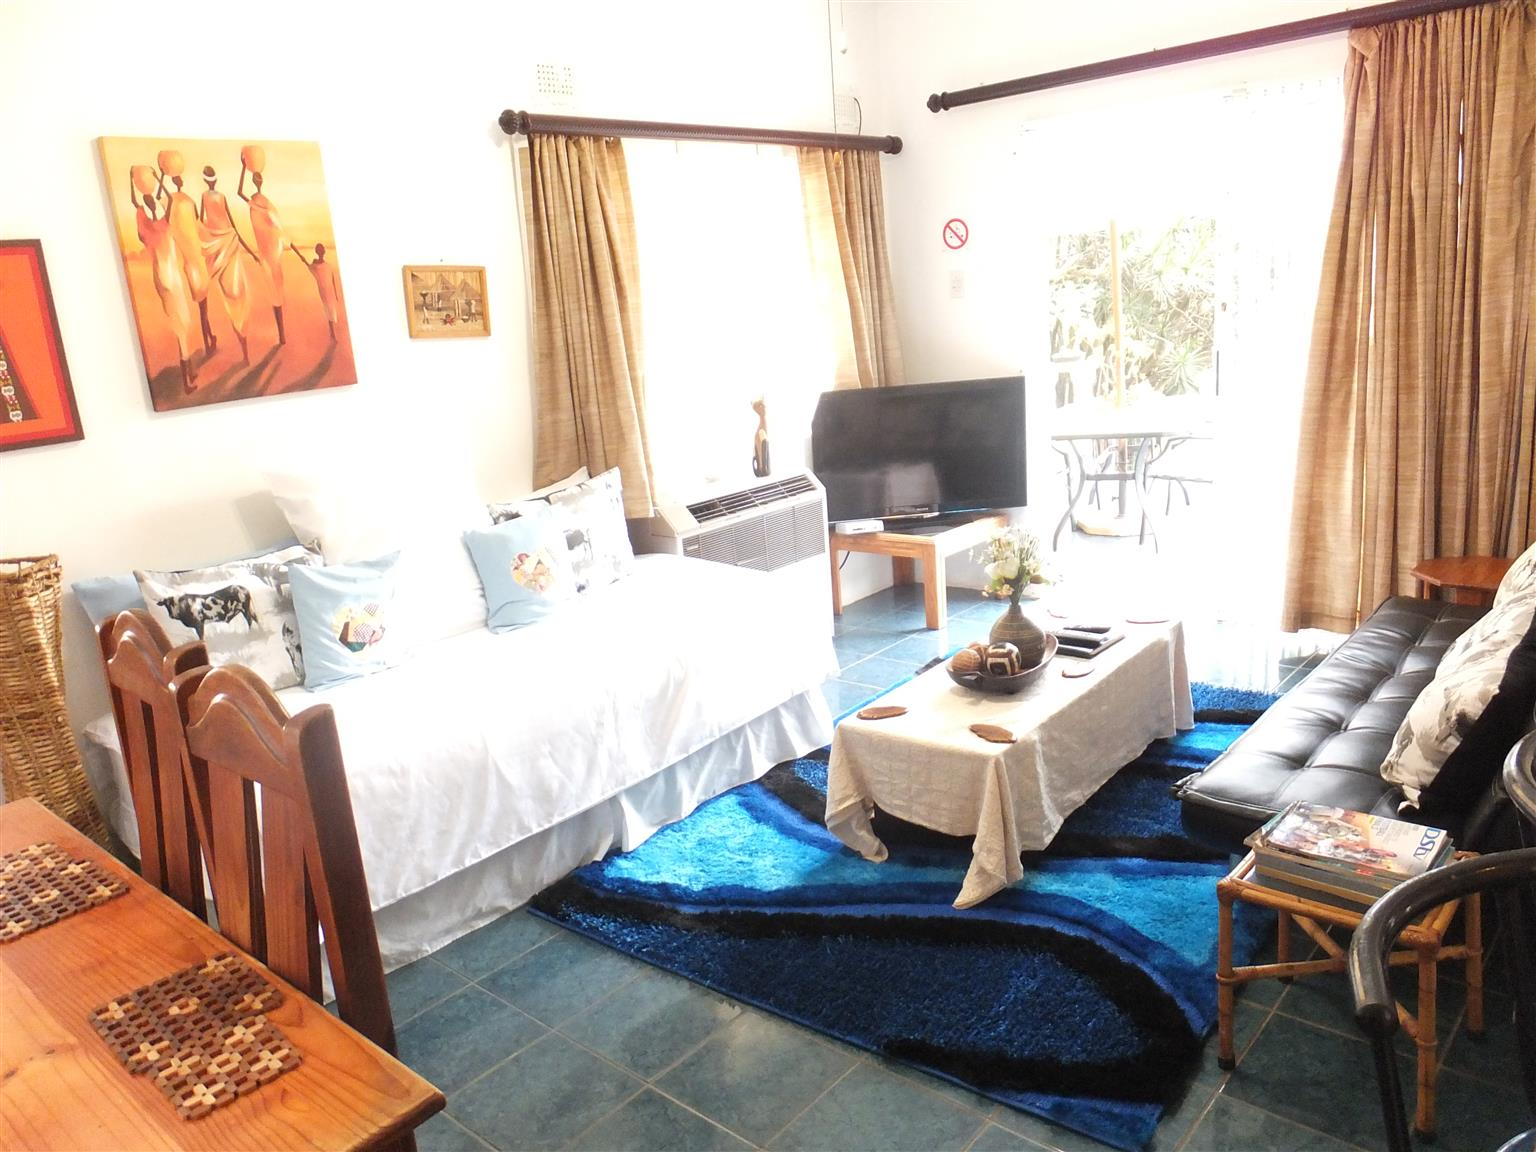 3 star bed and breakfast accommodation in Durban queensburgh